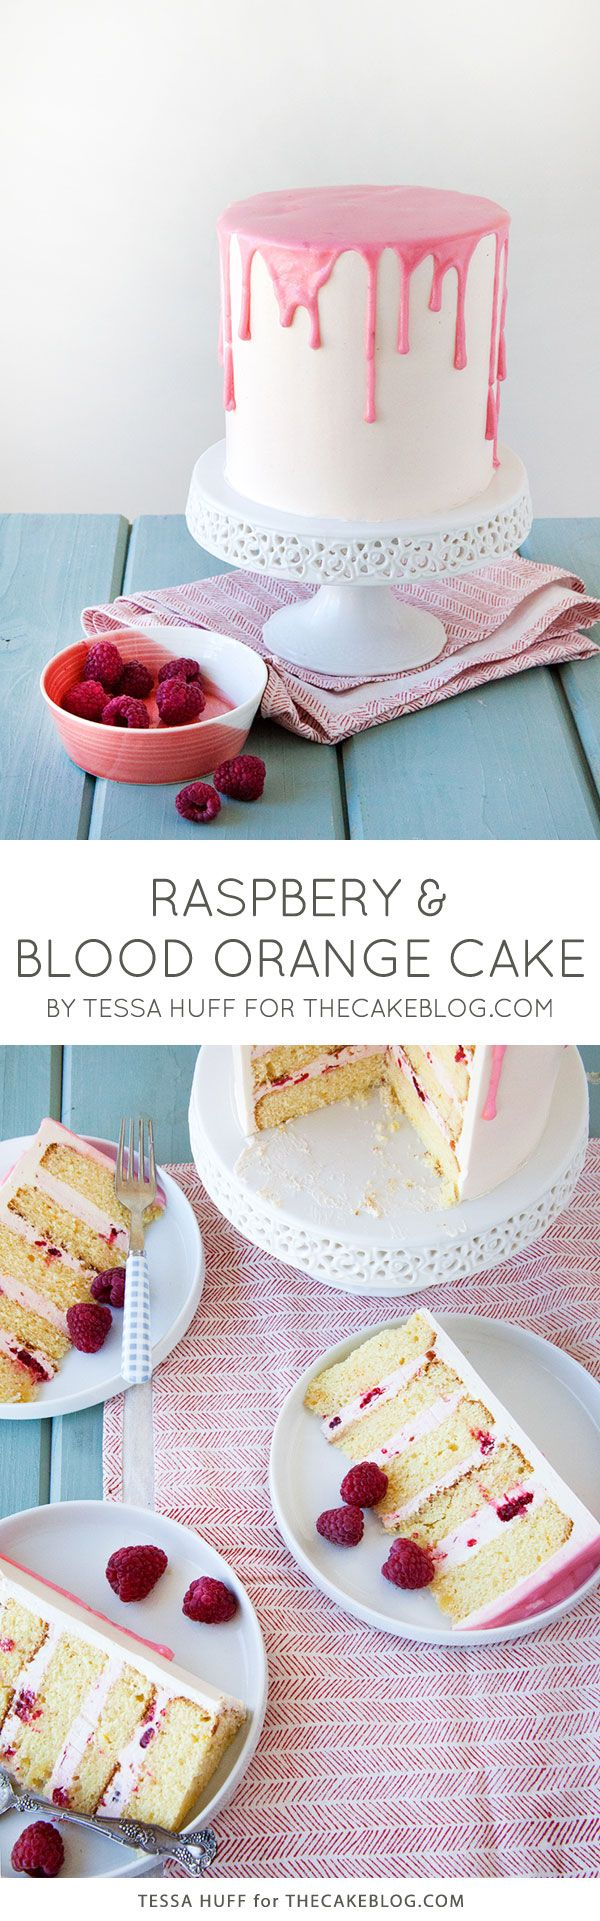 fresh raspberries and a blood orange glaze | Raspberry  Blood Orange Cake| Recipe by Tessa Huff for TheCakeBlog.com